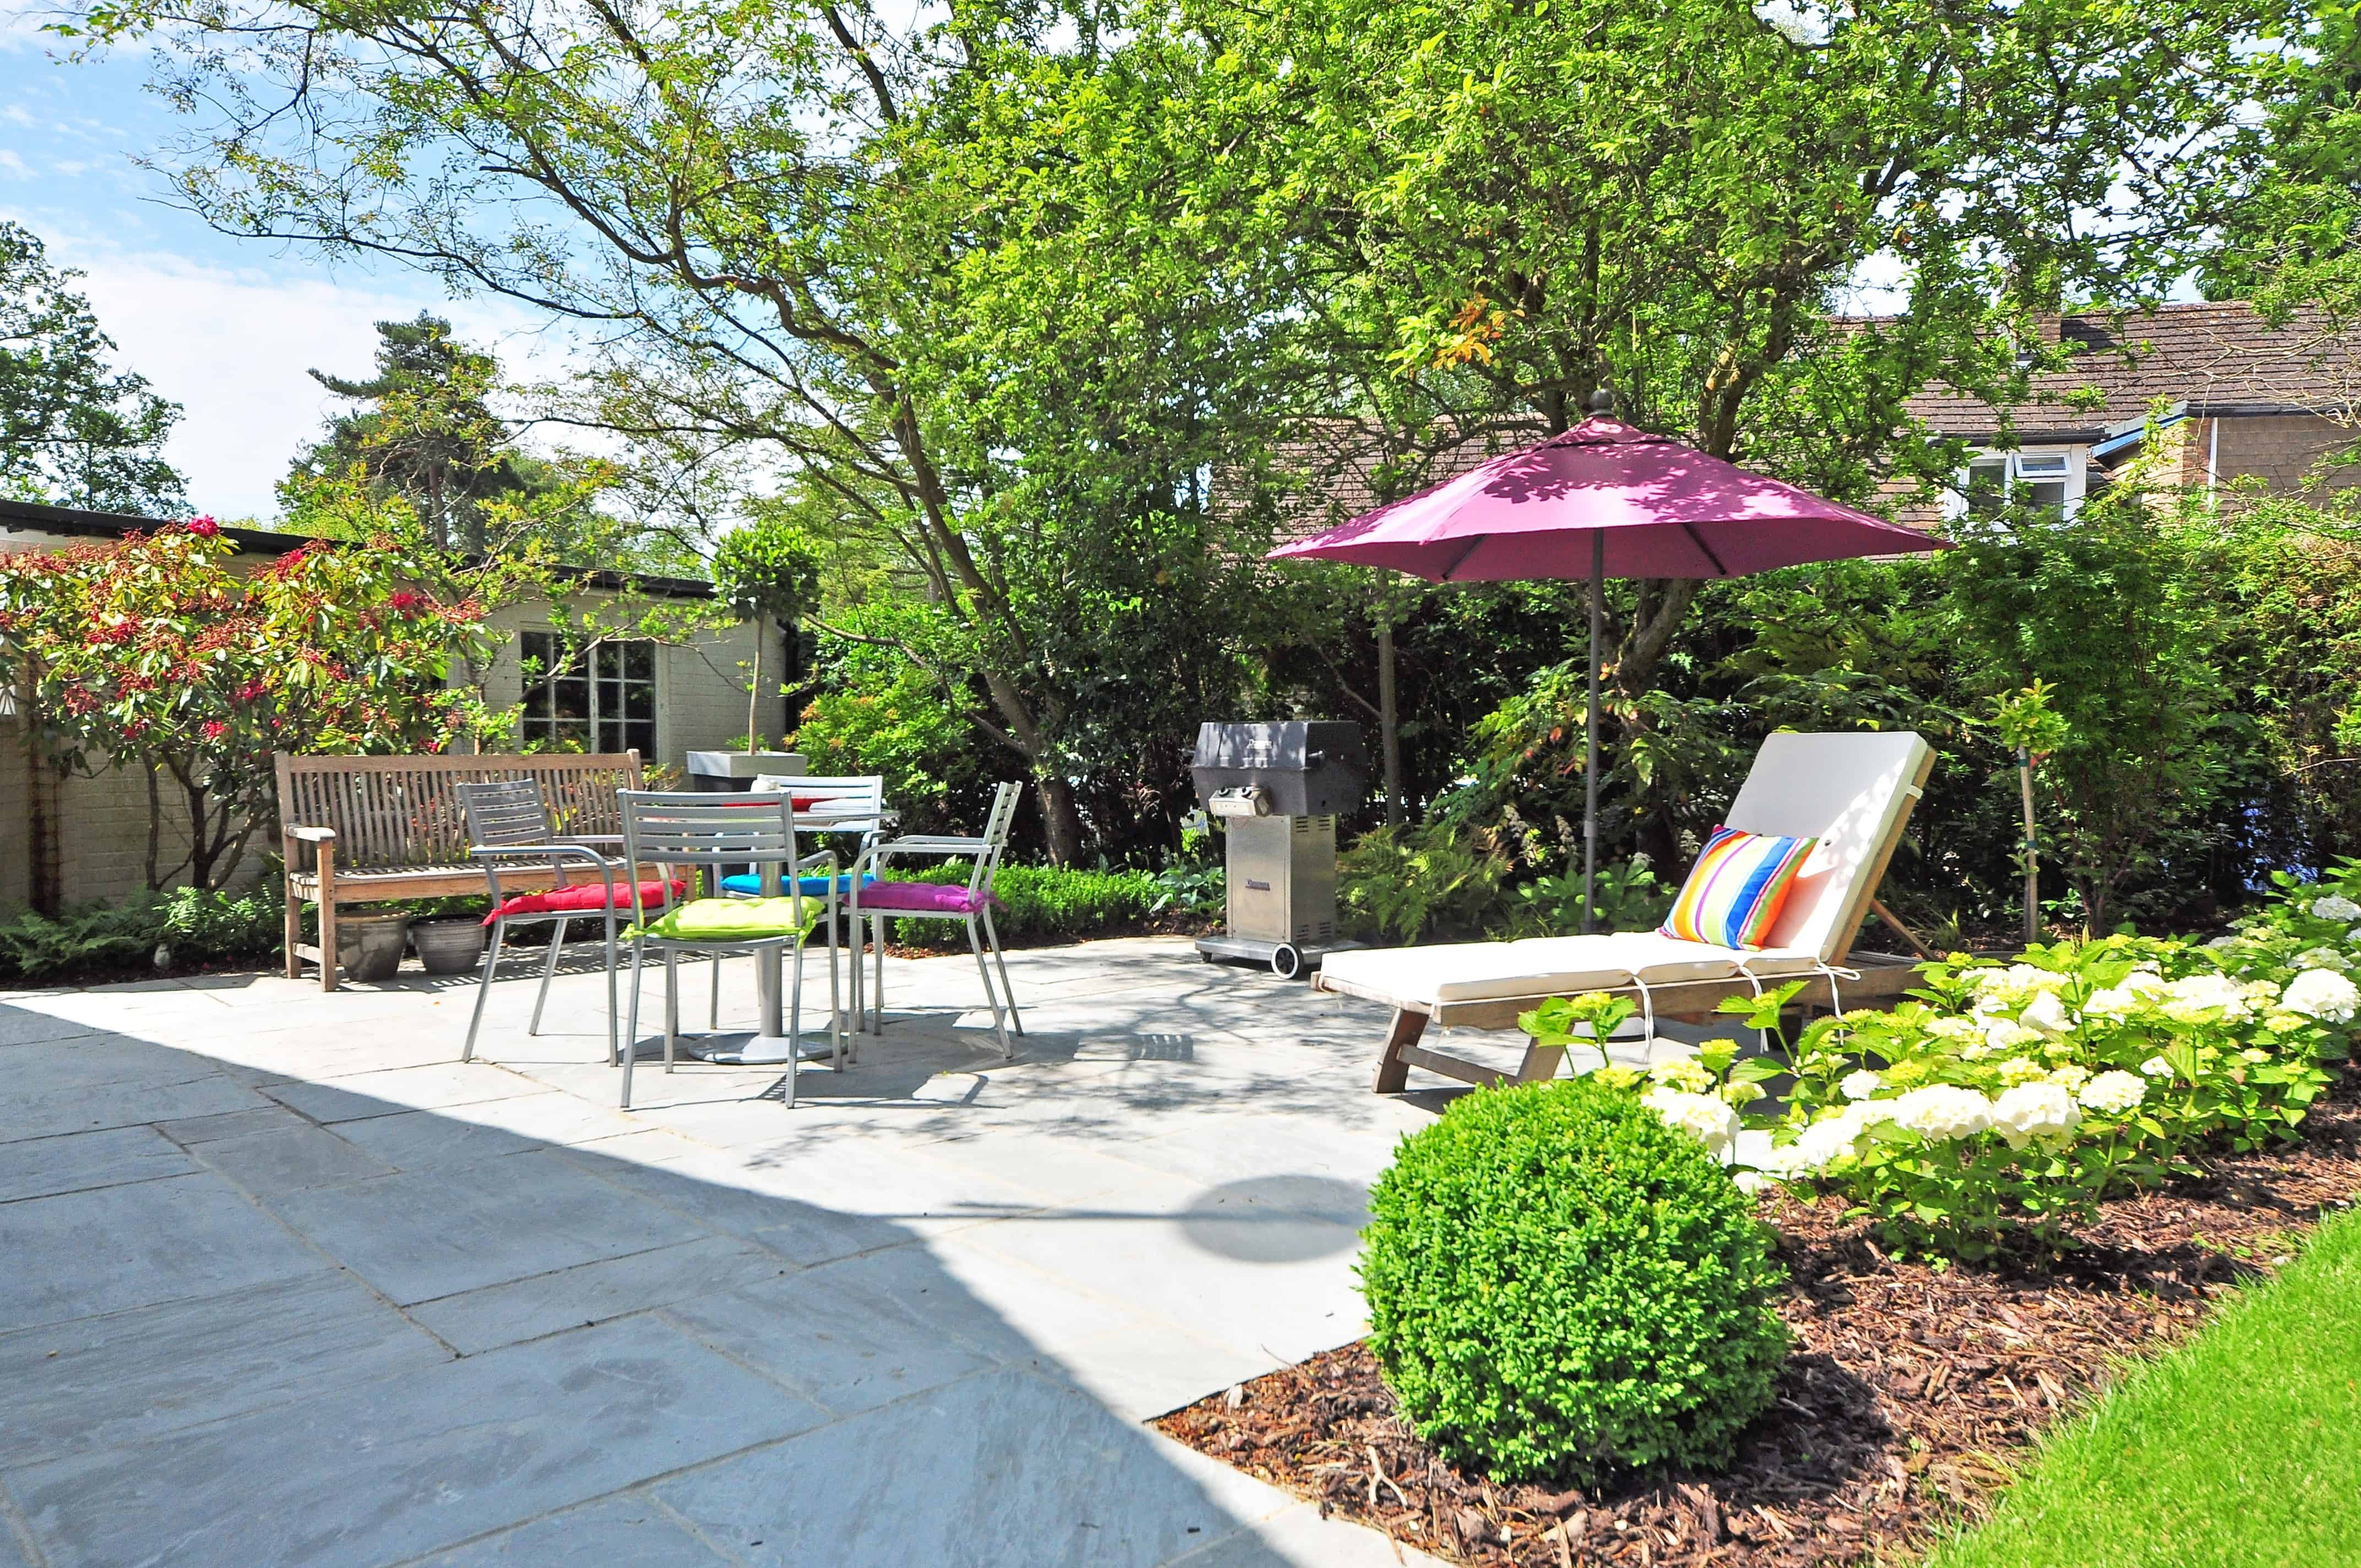 Garden Design Tips To Make The Most Of Your Space